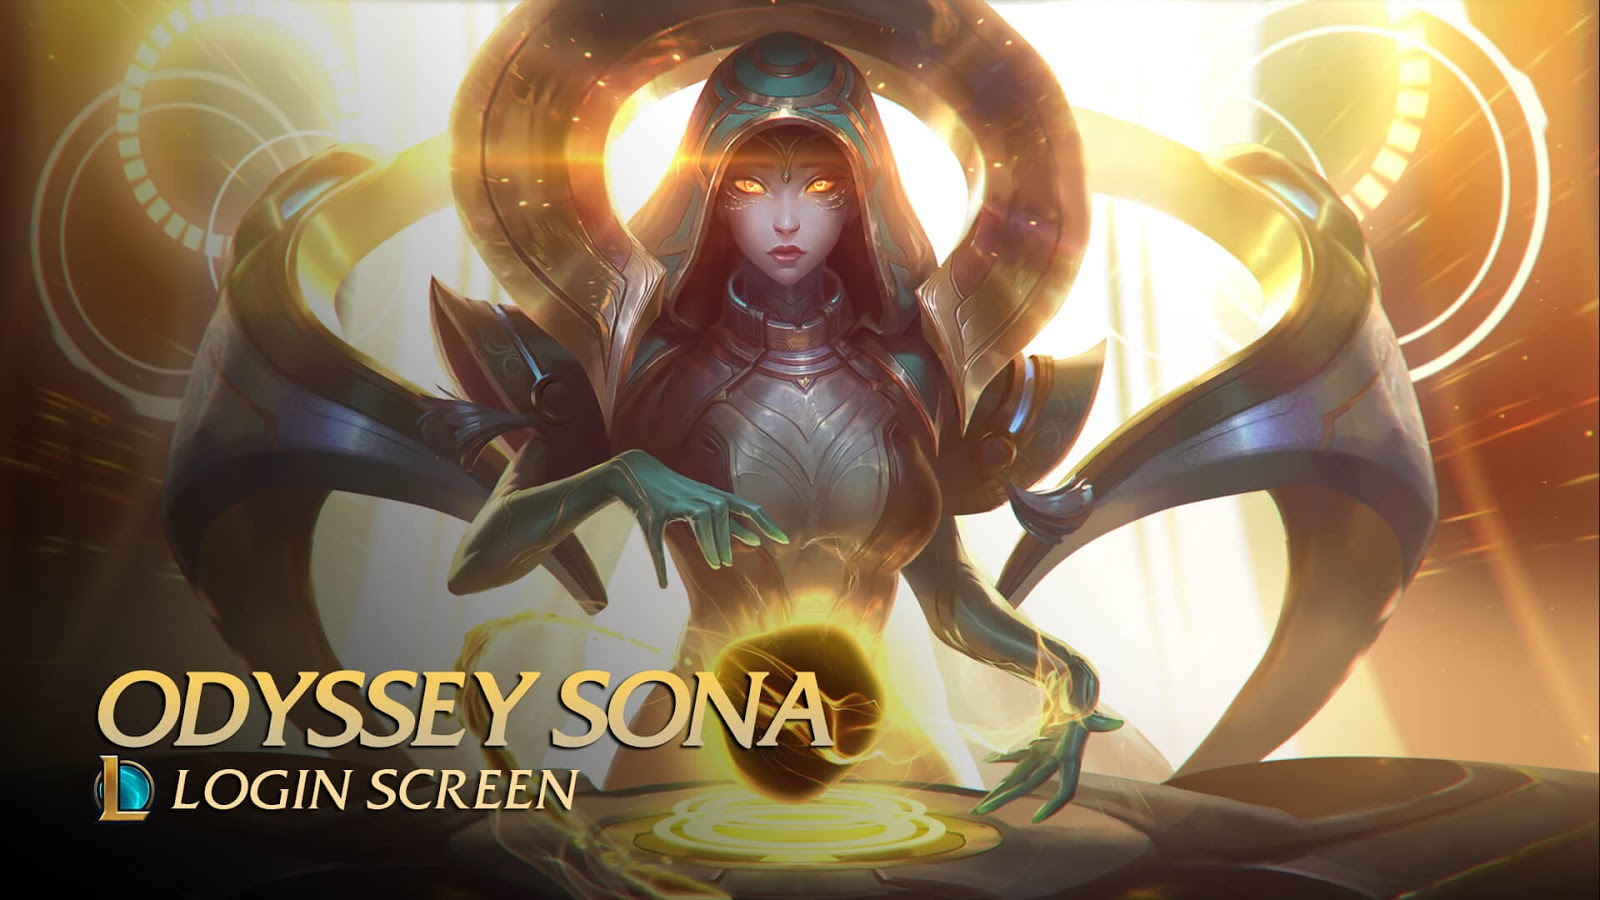 Odyssey Sona Animated 4K | League of Legends [Wallpaper Engine Free]